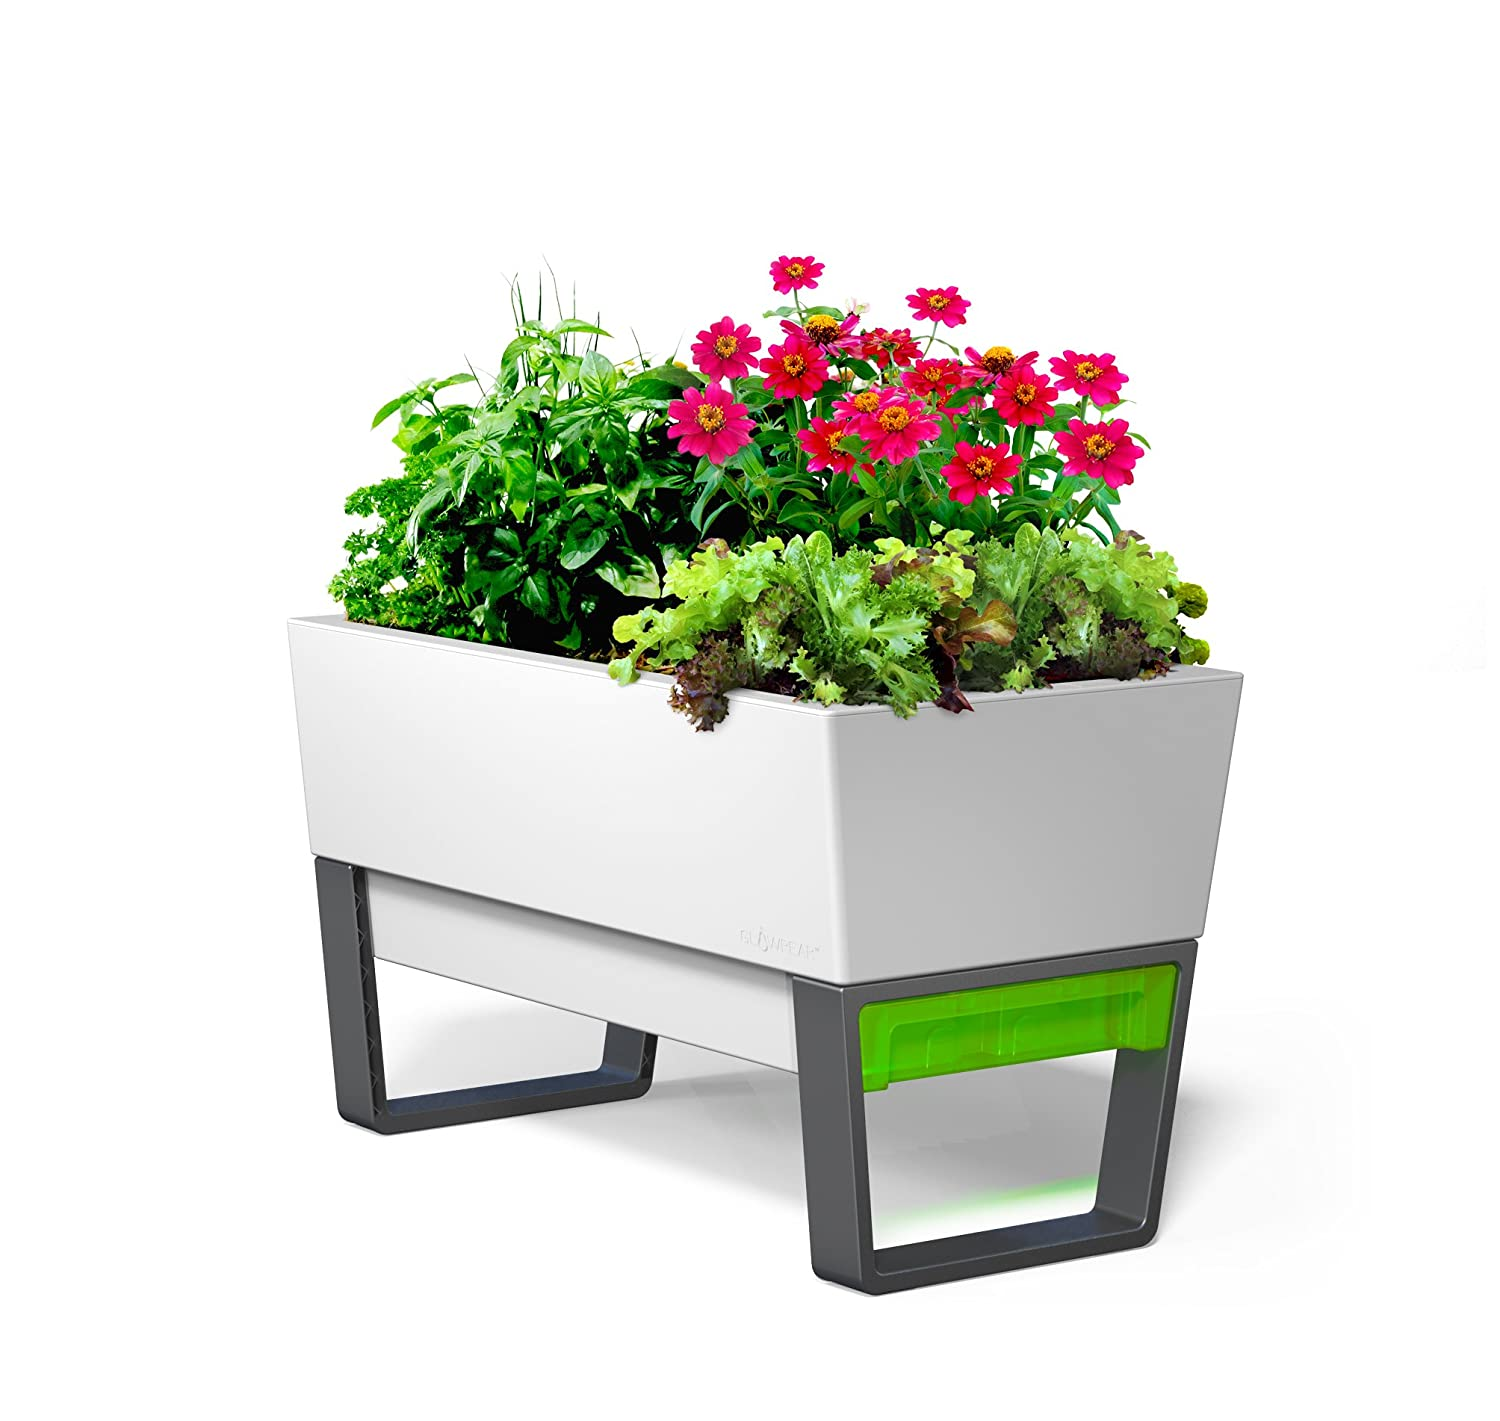 The big list of self watering planters for stylish gardening anywhere - Glowpear Urban Garden Self Watering Planter Amazon Co Uk Garden Outdoors